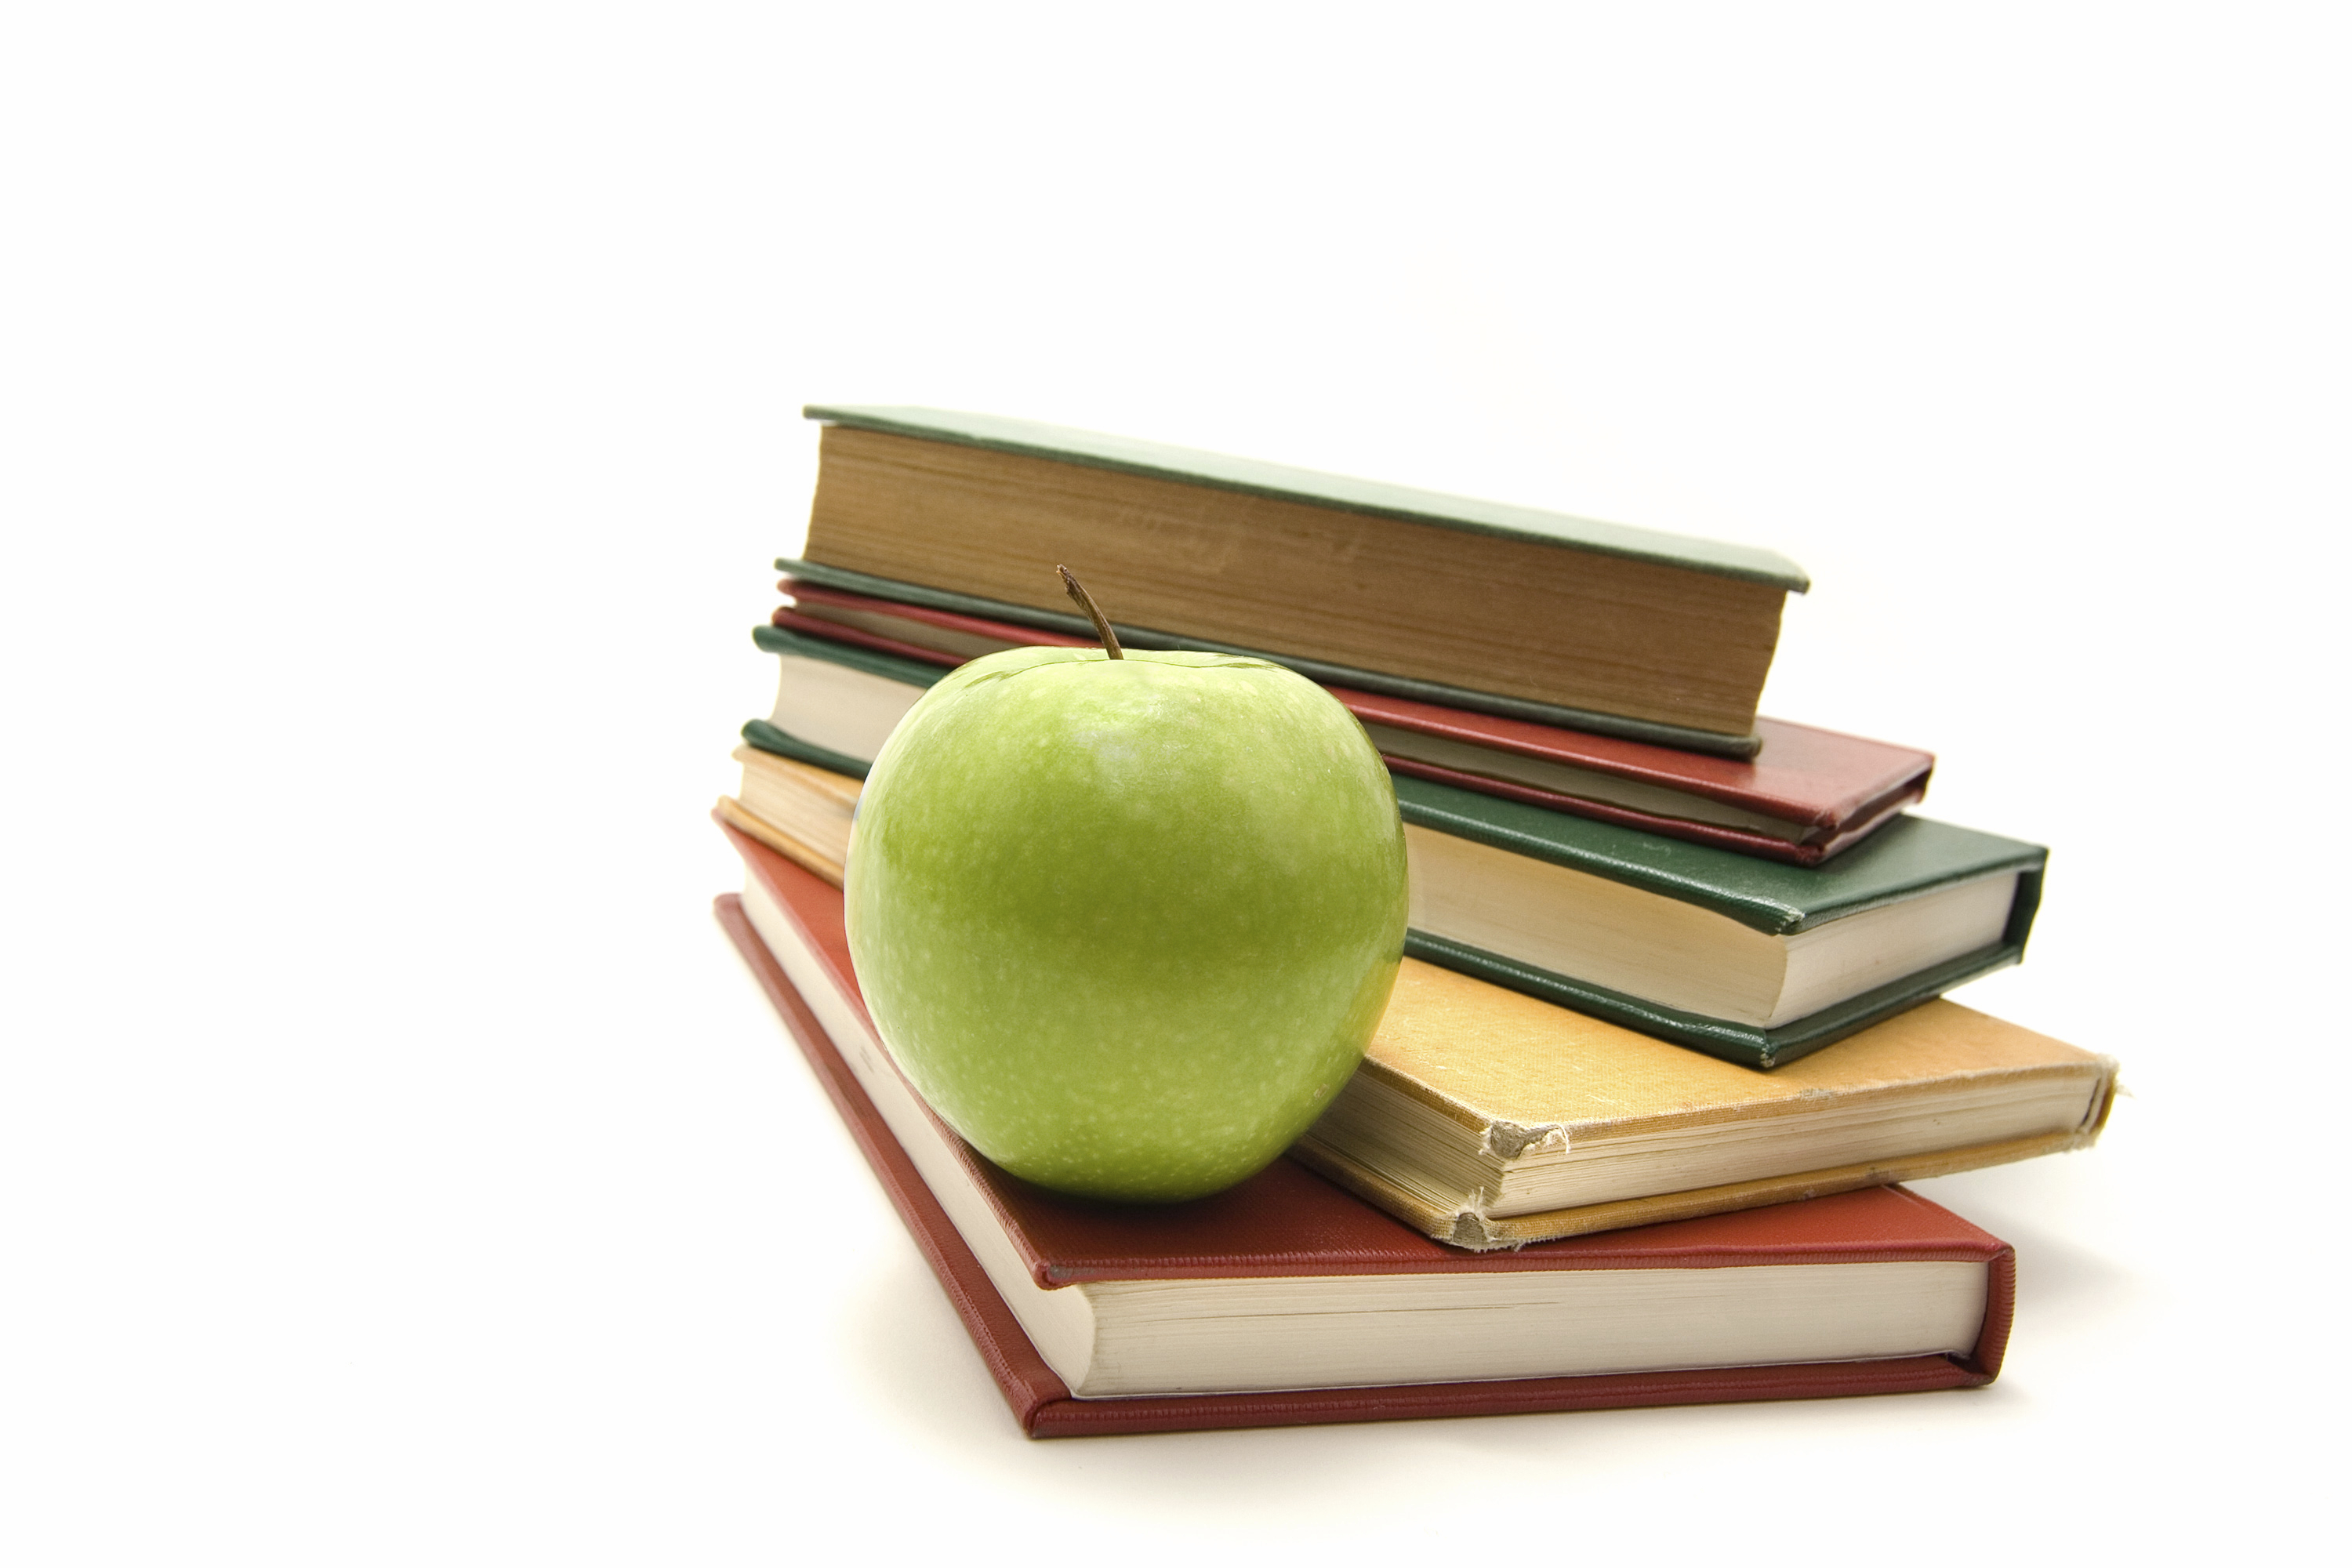 Books and apple | BME Lab and Science